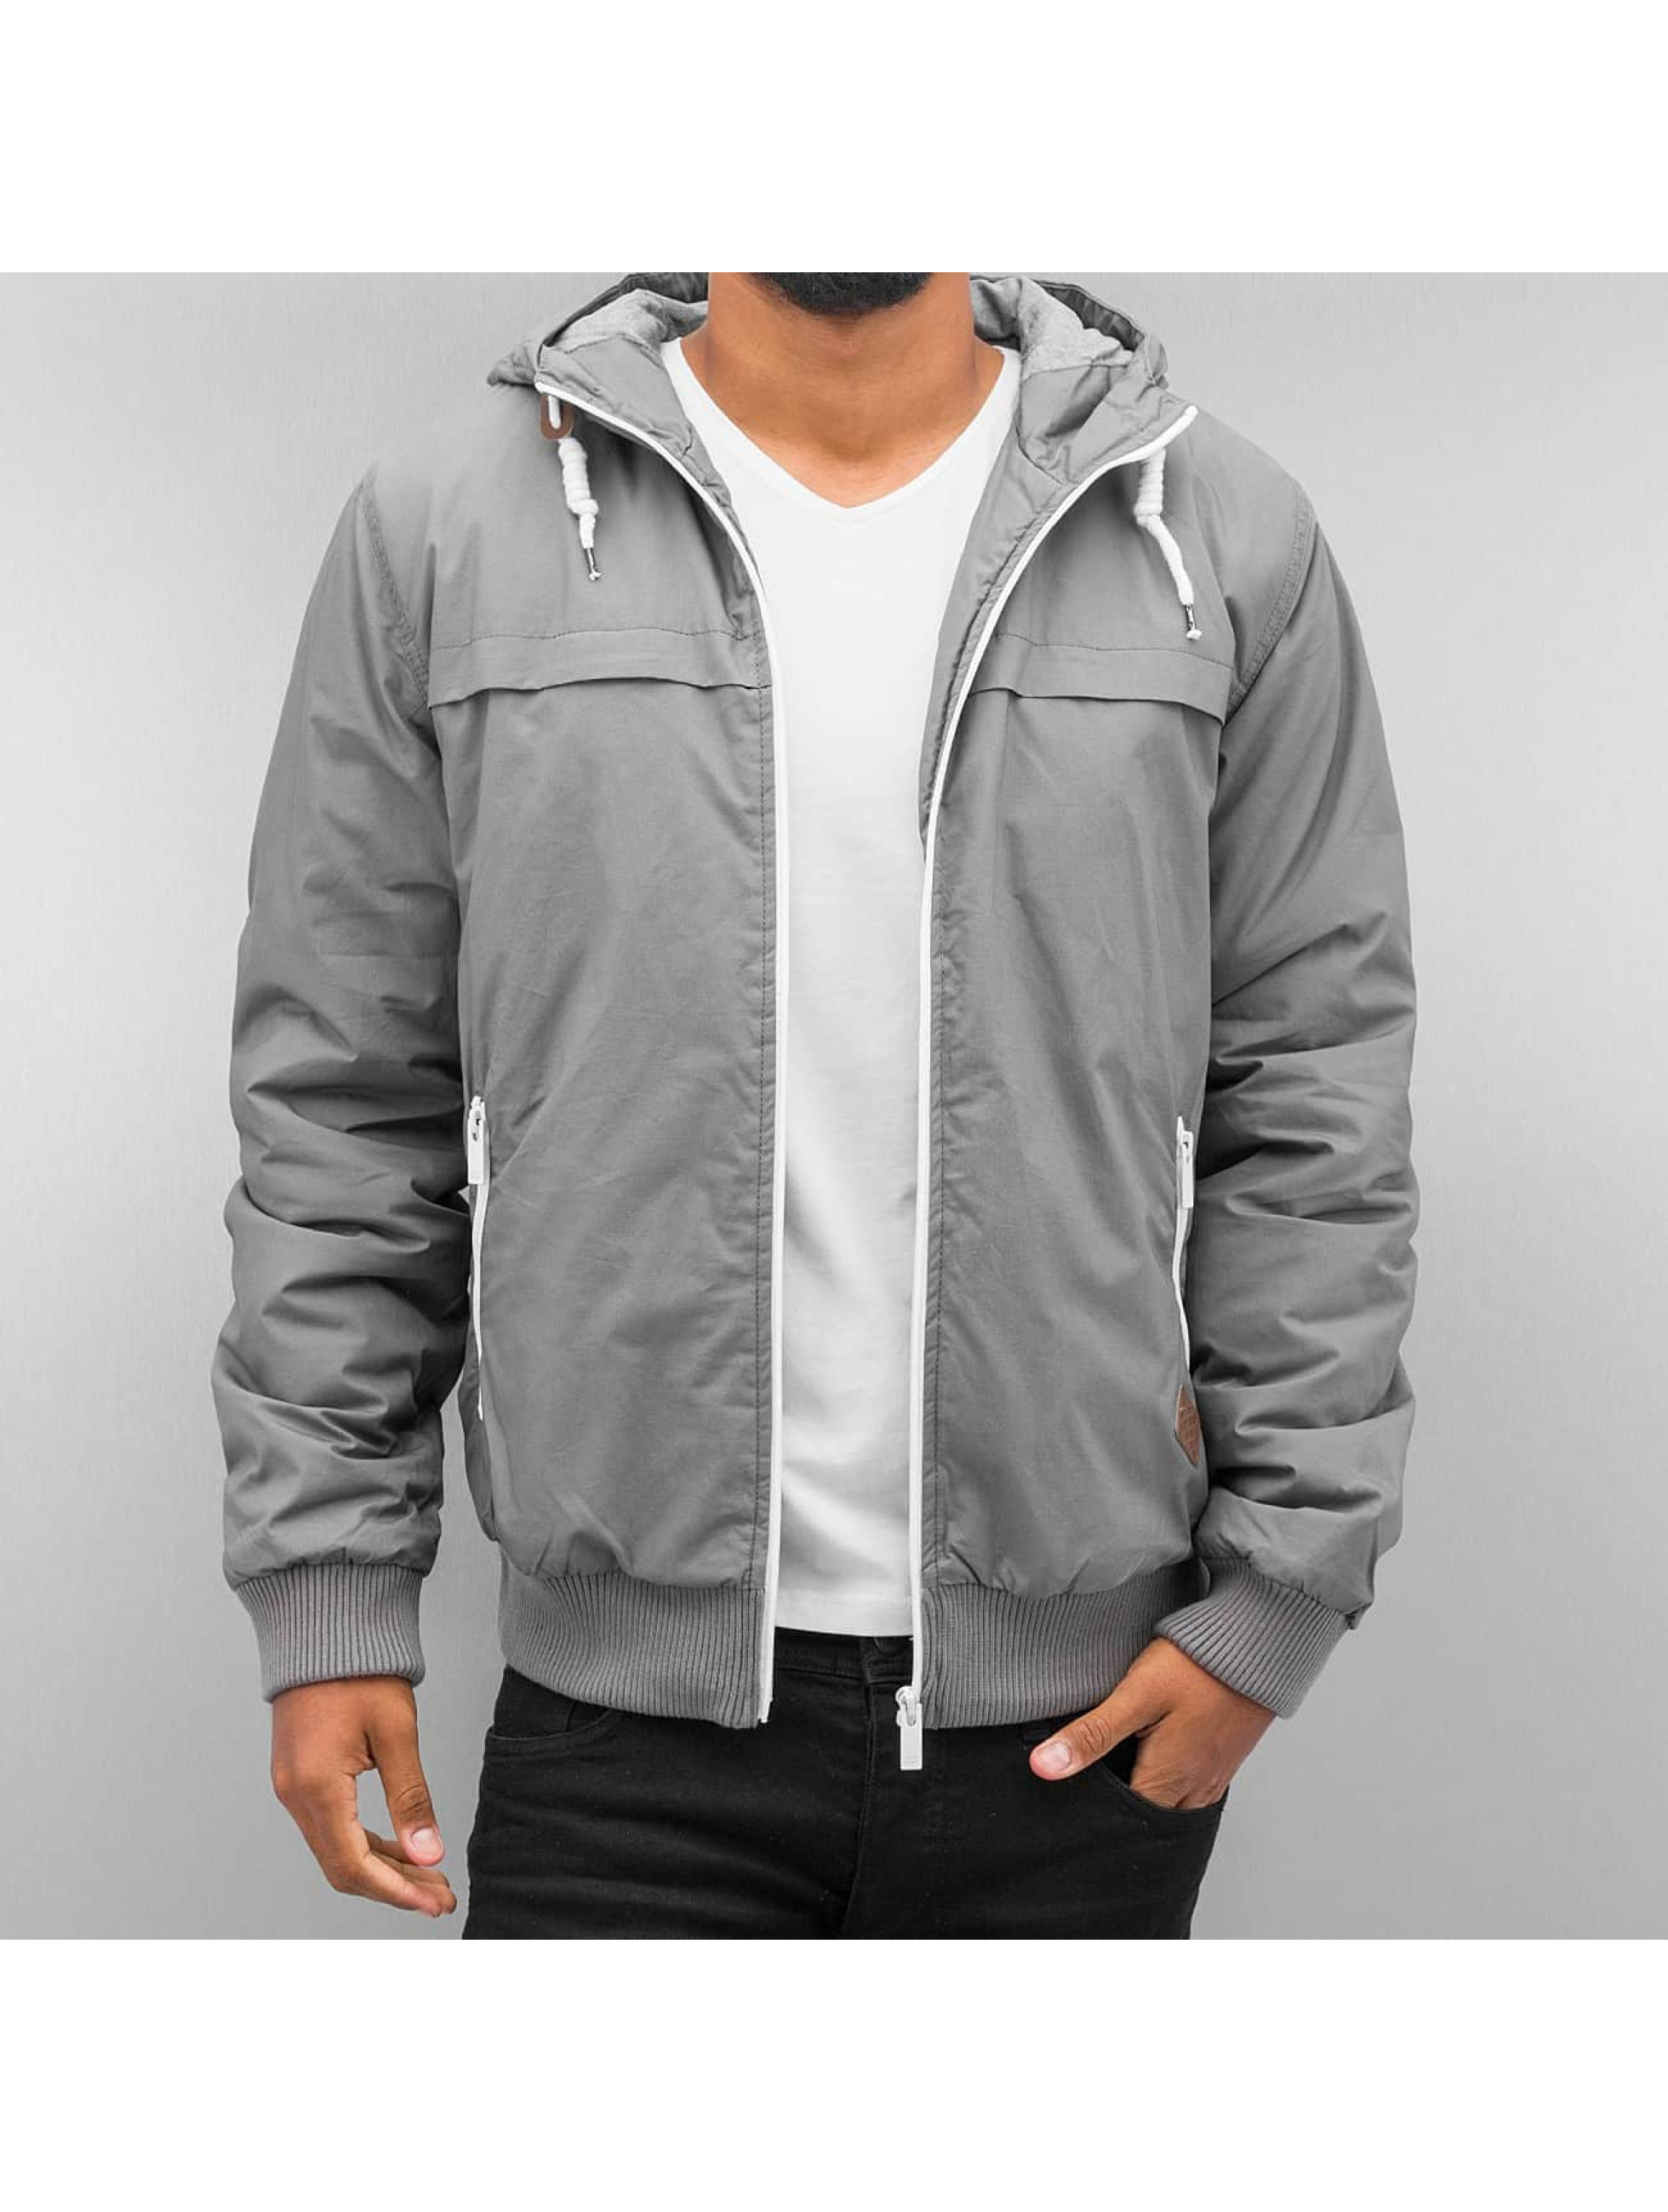 98 86 Curt Jacket Dusty Grey